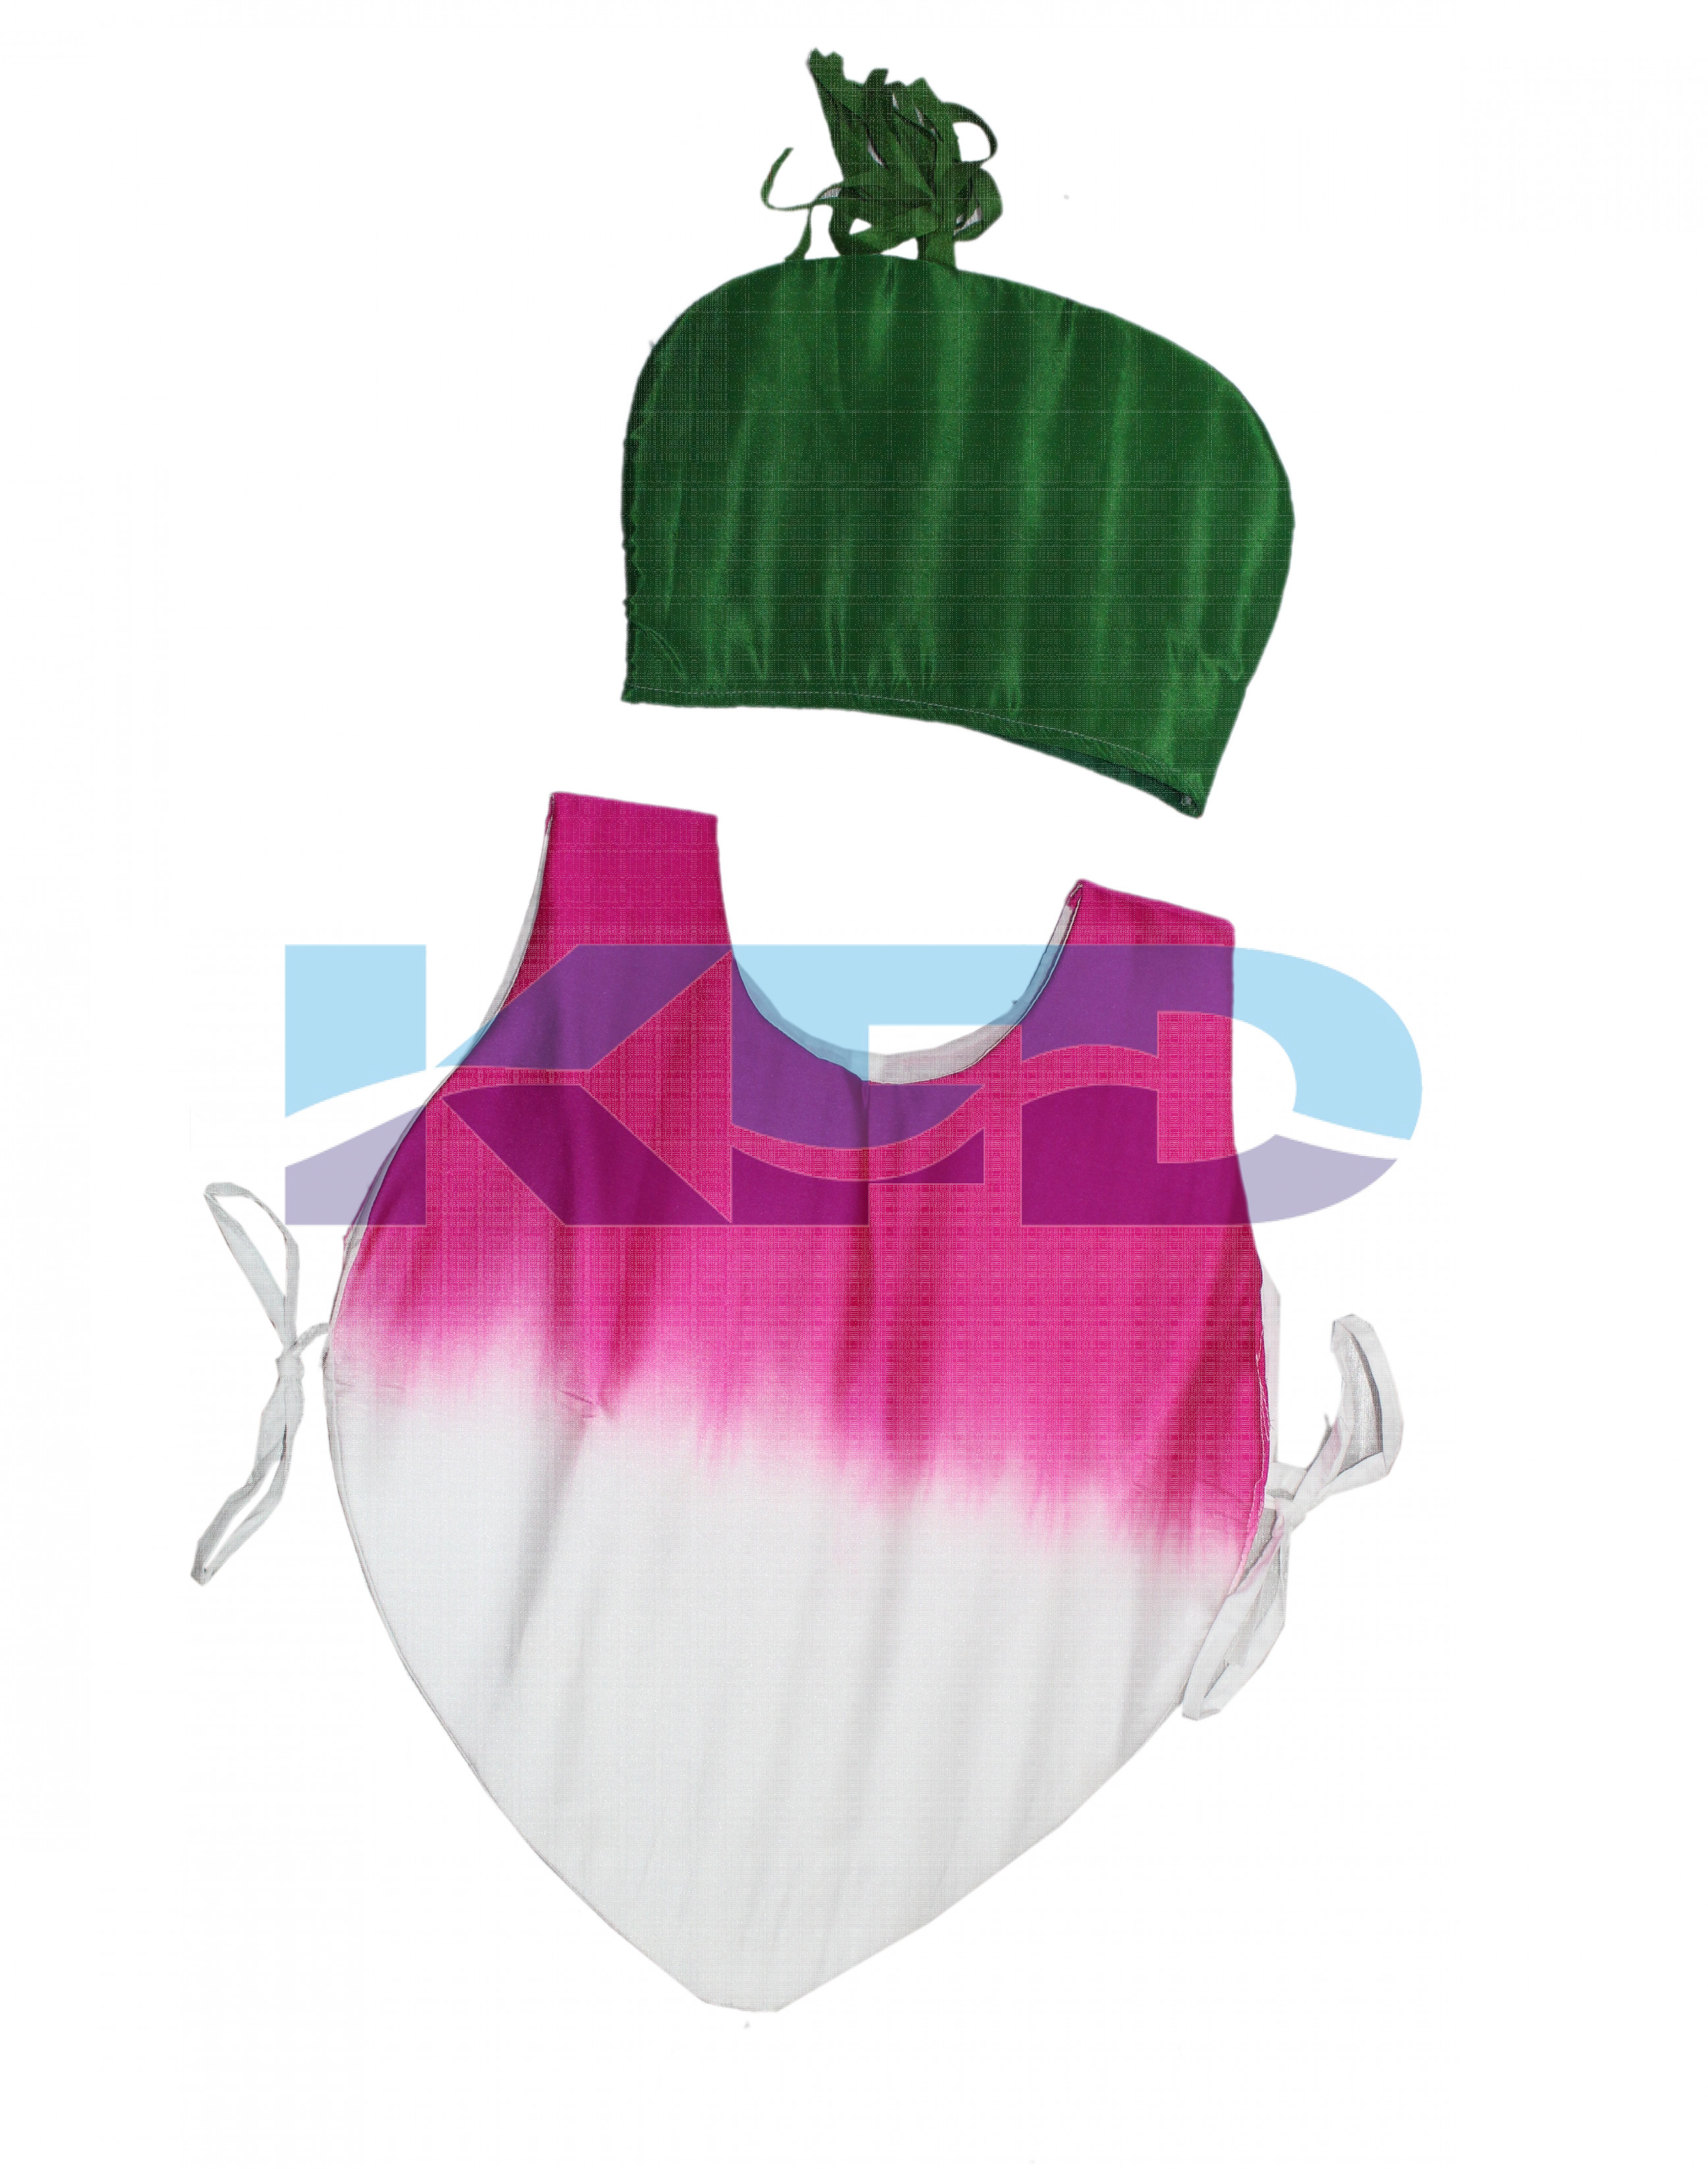 Turnip Vegetables Costume only cutout with Cap for Annual function/Theme Party/Competition/Stage Shows/Birthday Party Dress